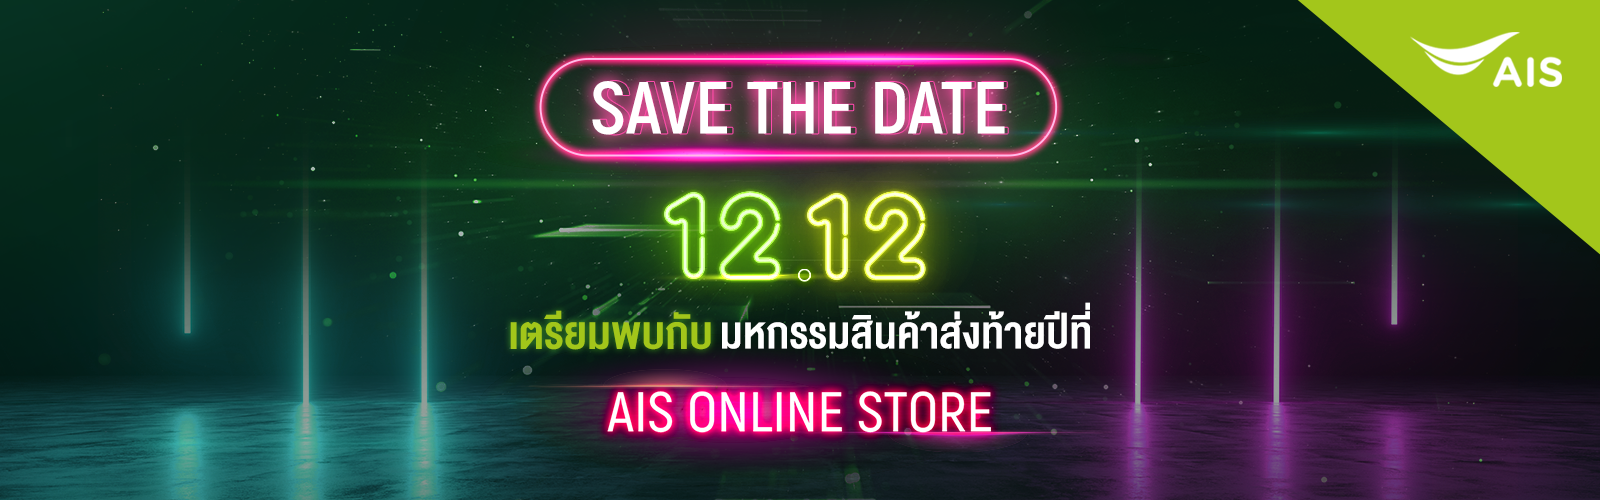 1212 SAVE THE DATE